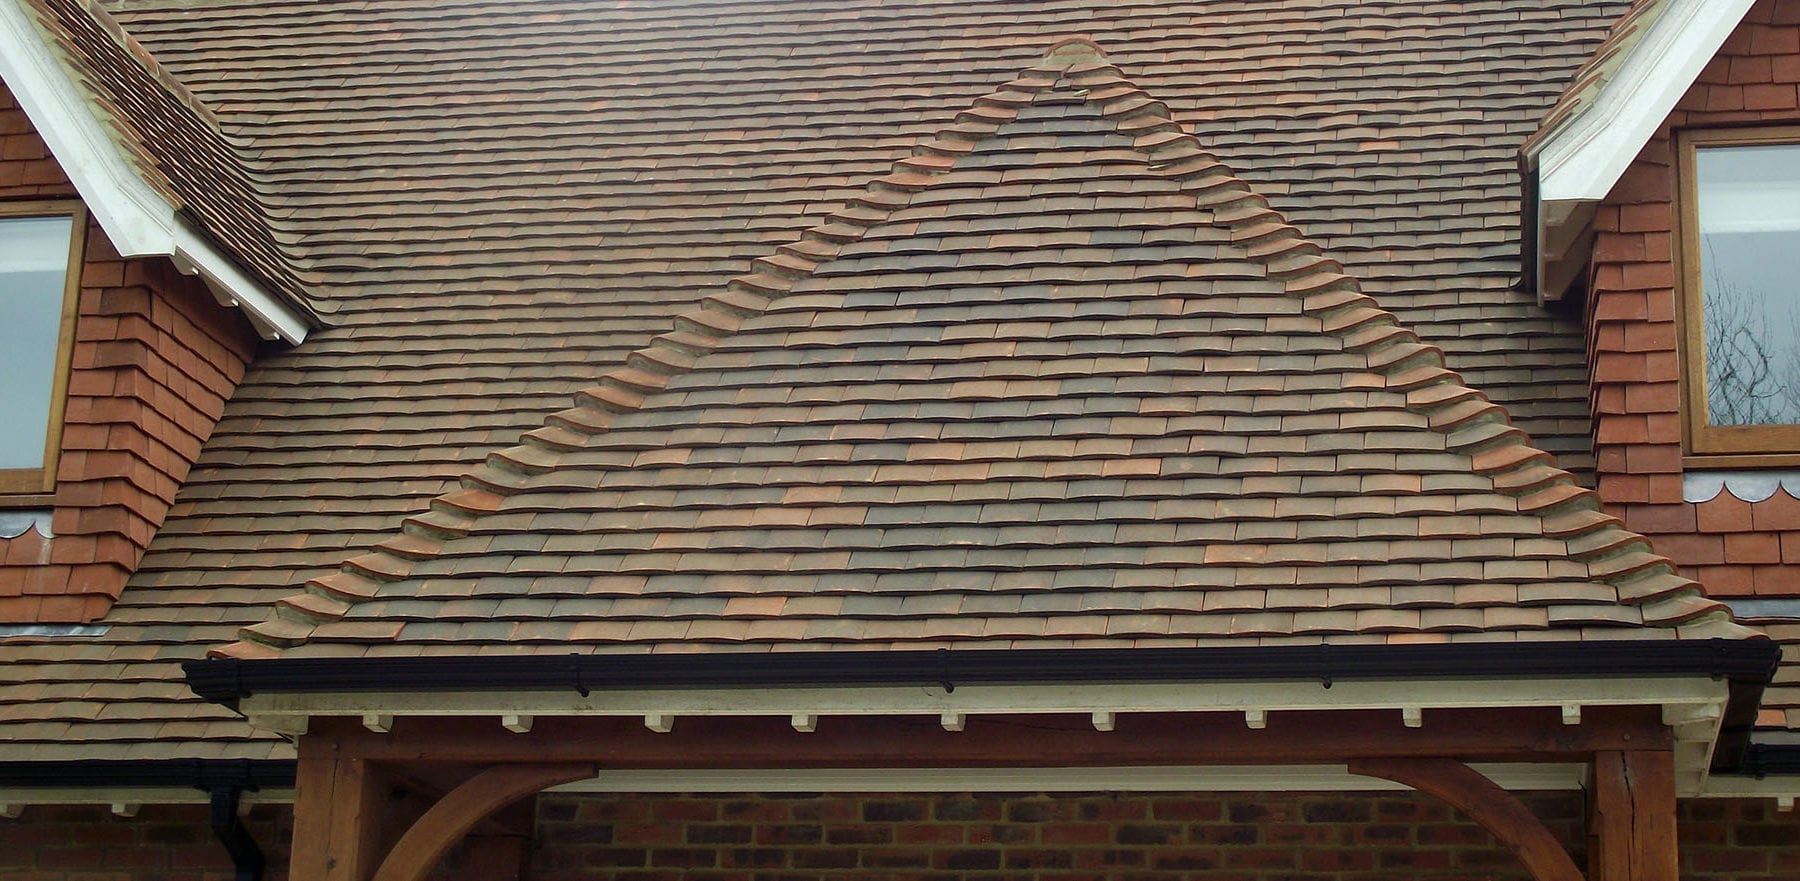 Lifestiles - Handcrafted Autumn Clay Roof Tiles - Sussex, England 5